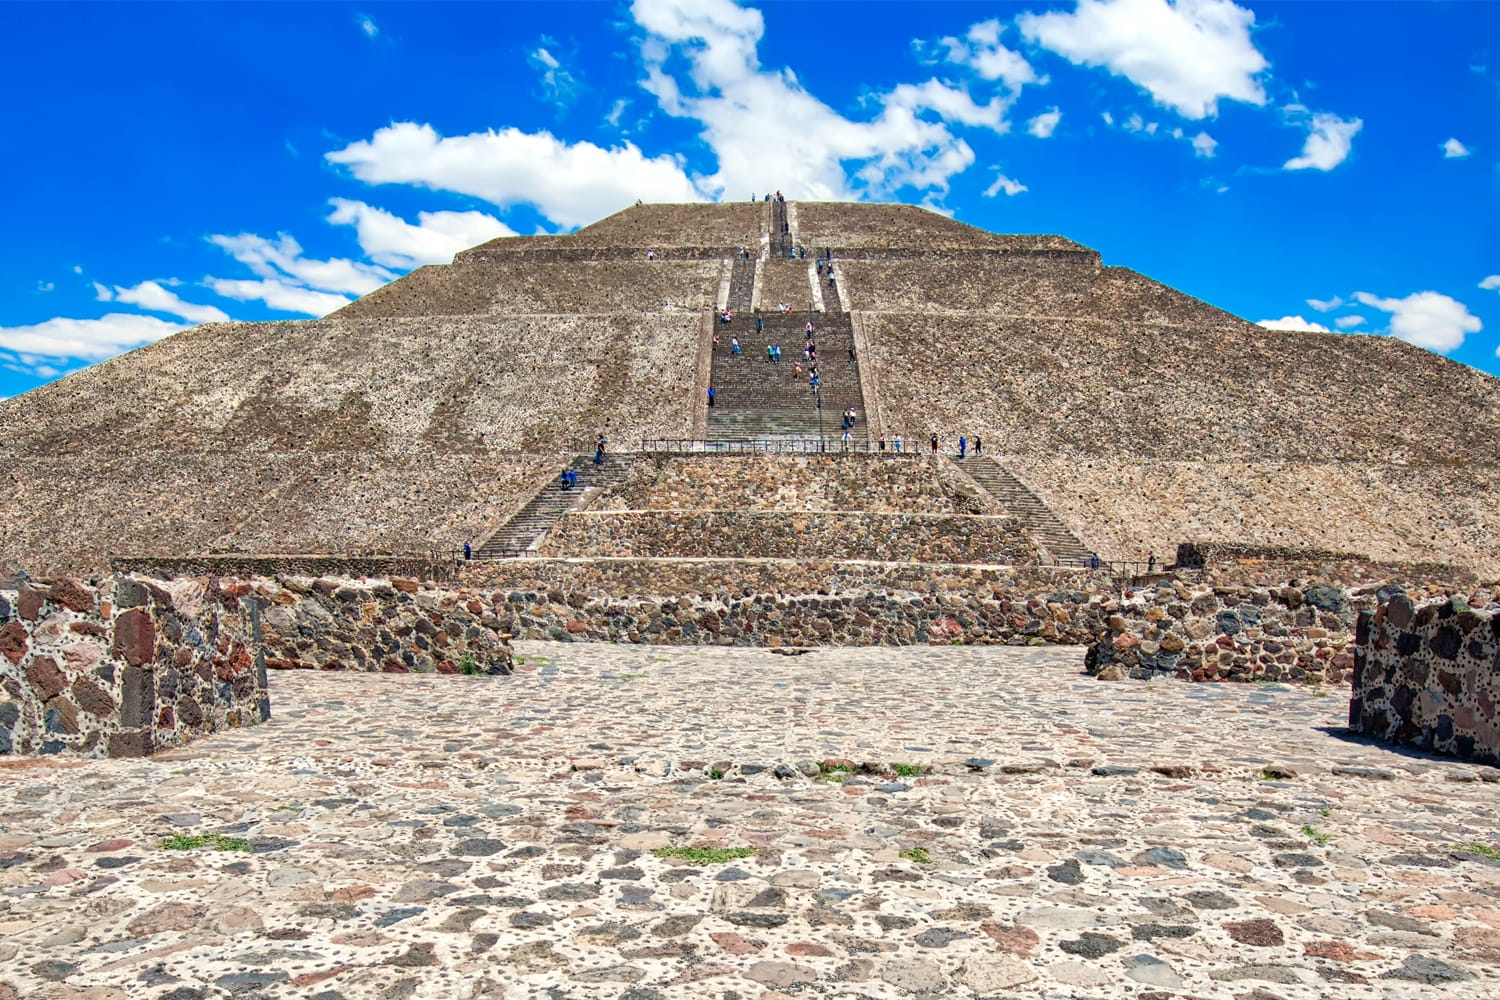 Pyramid of the Sun at Teotihuacan, near Mexico City in Mexico